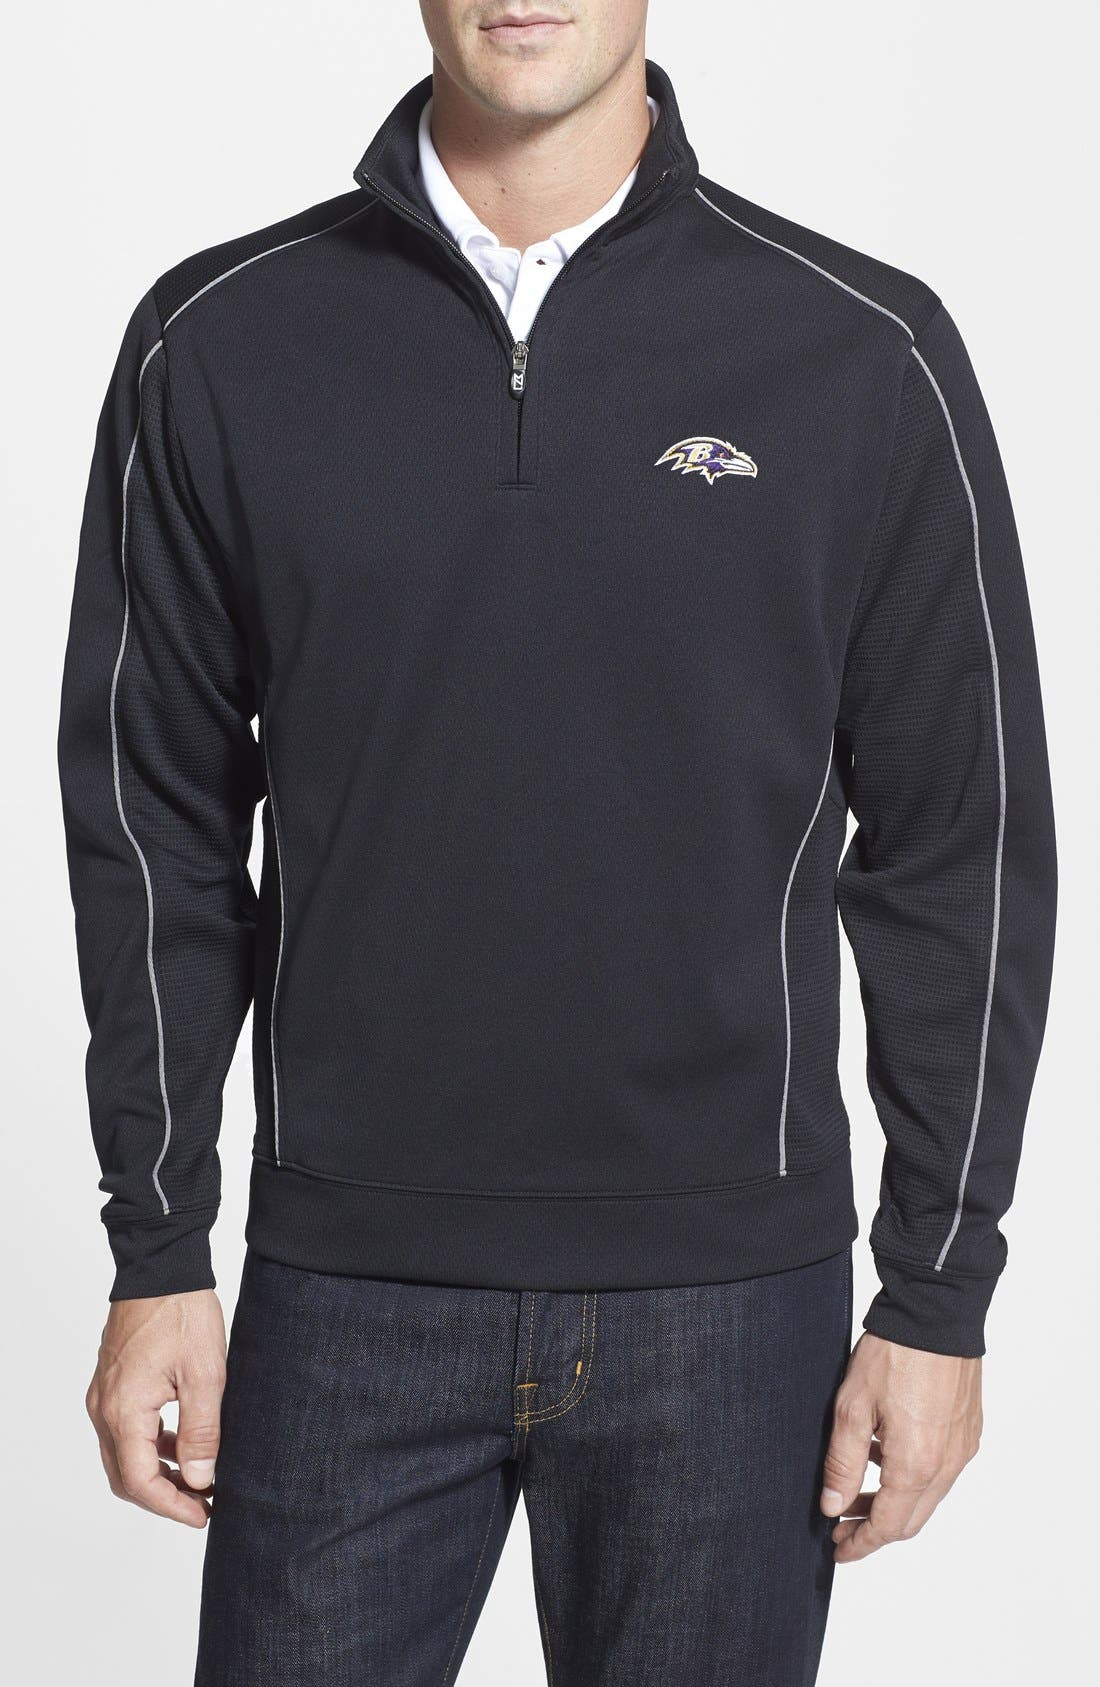 Main Image - Cutter & Buck Baltimore Ravens - Edge DryTec Moisture Wicking Half Zip Pullover